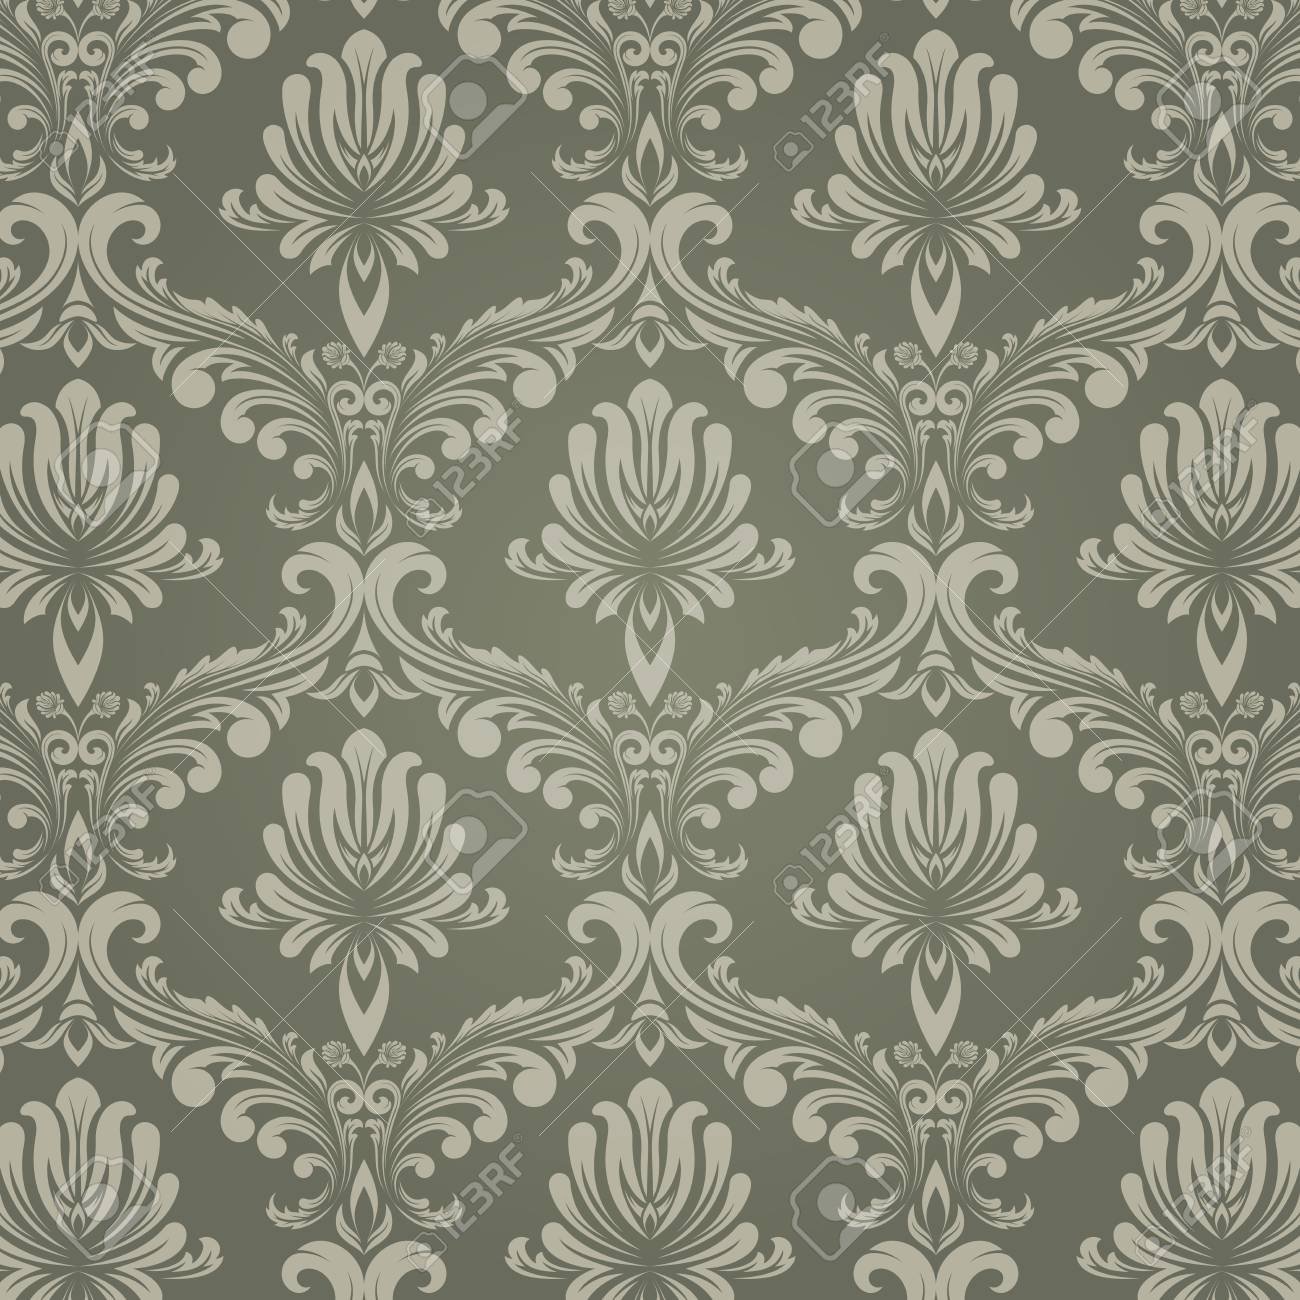 Retro Wallpaper And Vintage Seamless Pattern For Background